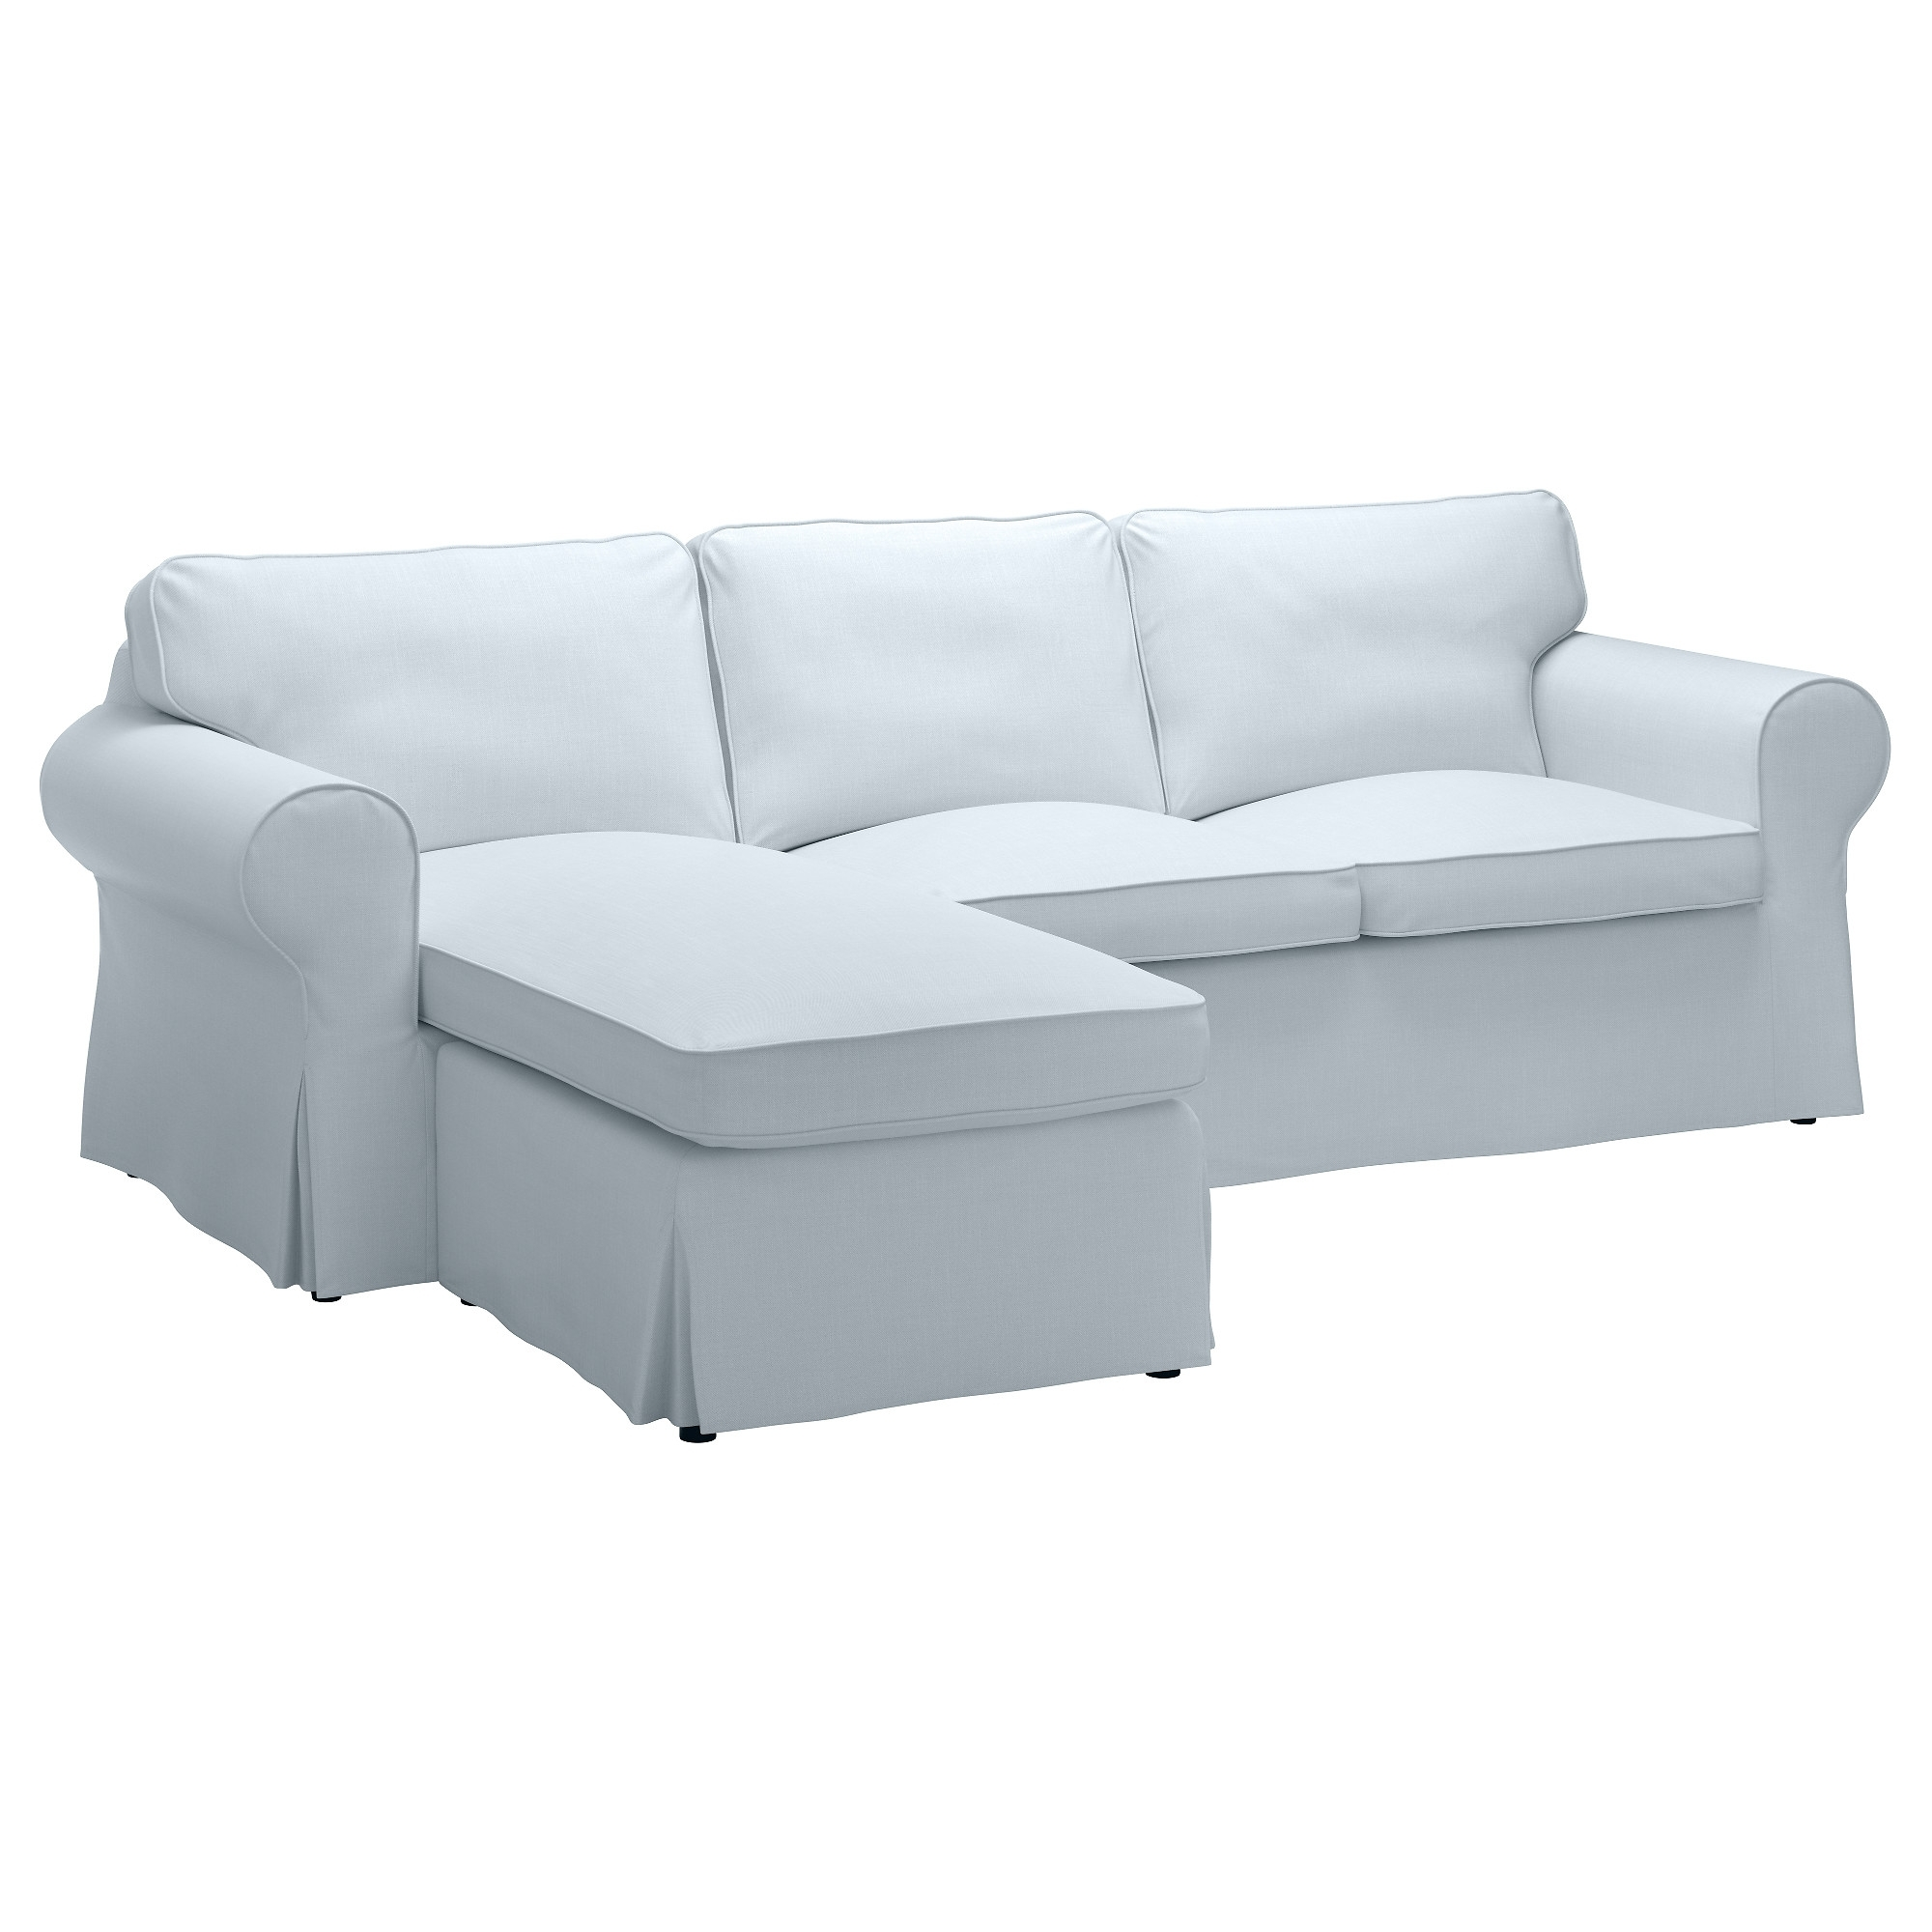 Ikea Ektorp Loveseat Chaises For Latest Ektorp Sofa – With Chaise/nordvalla Light Blue – Ikea (View 4 of 15)